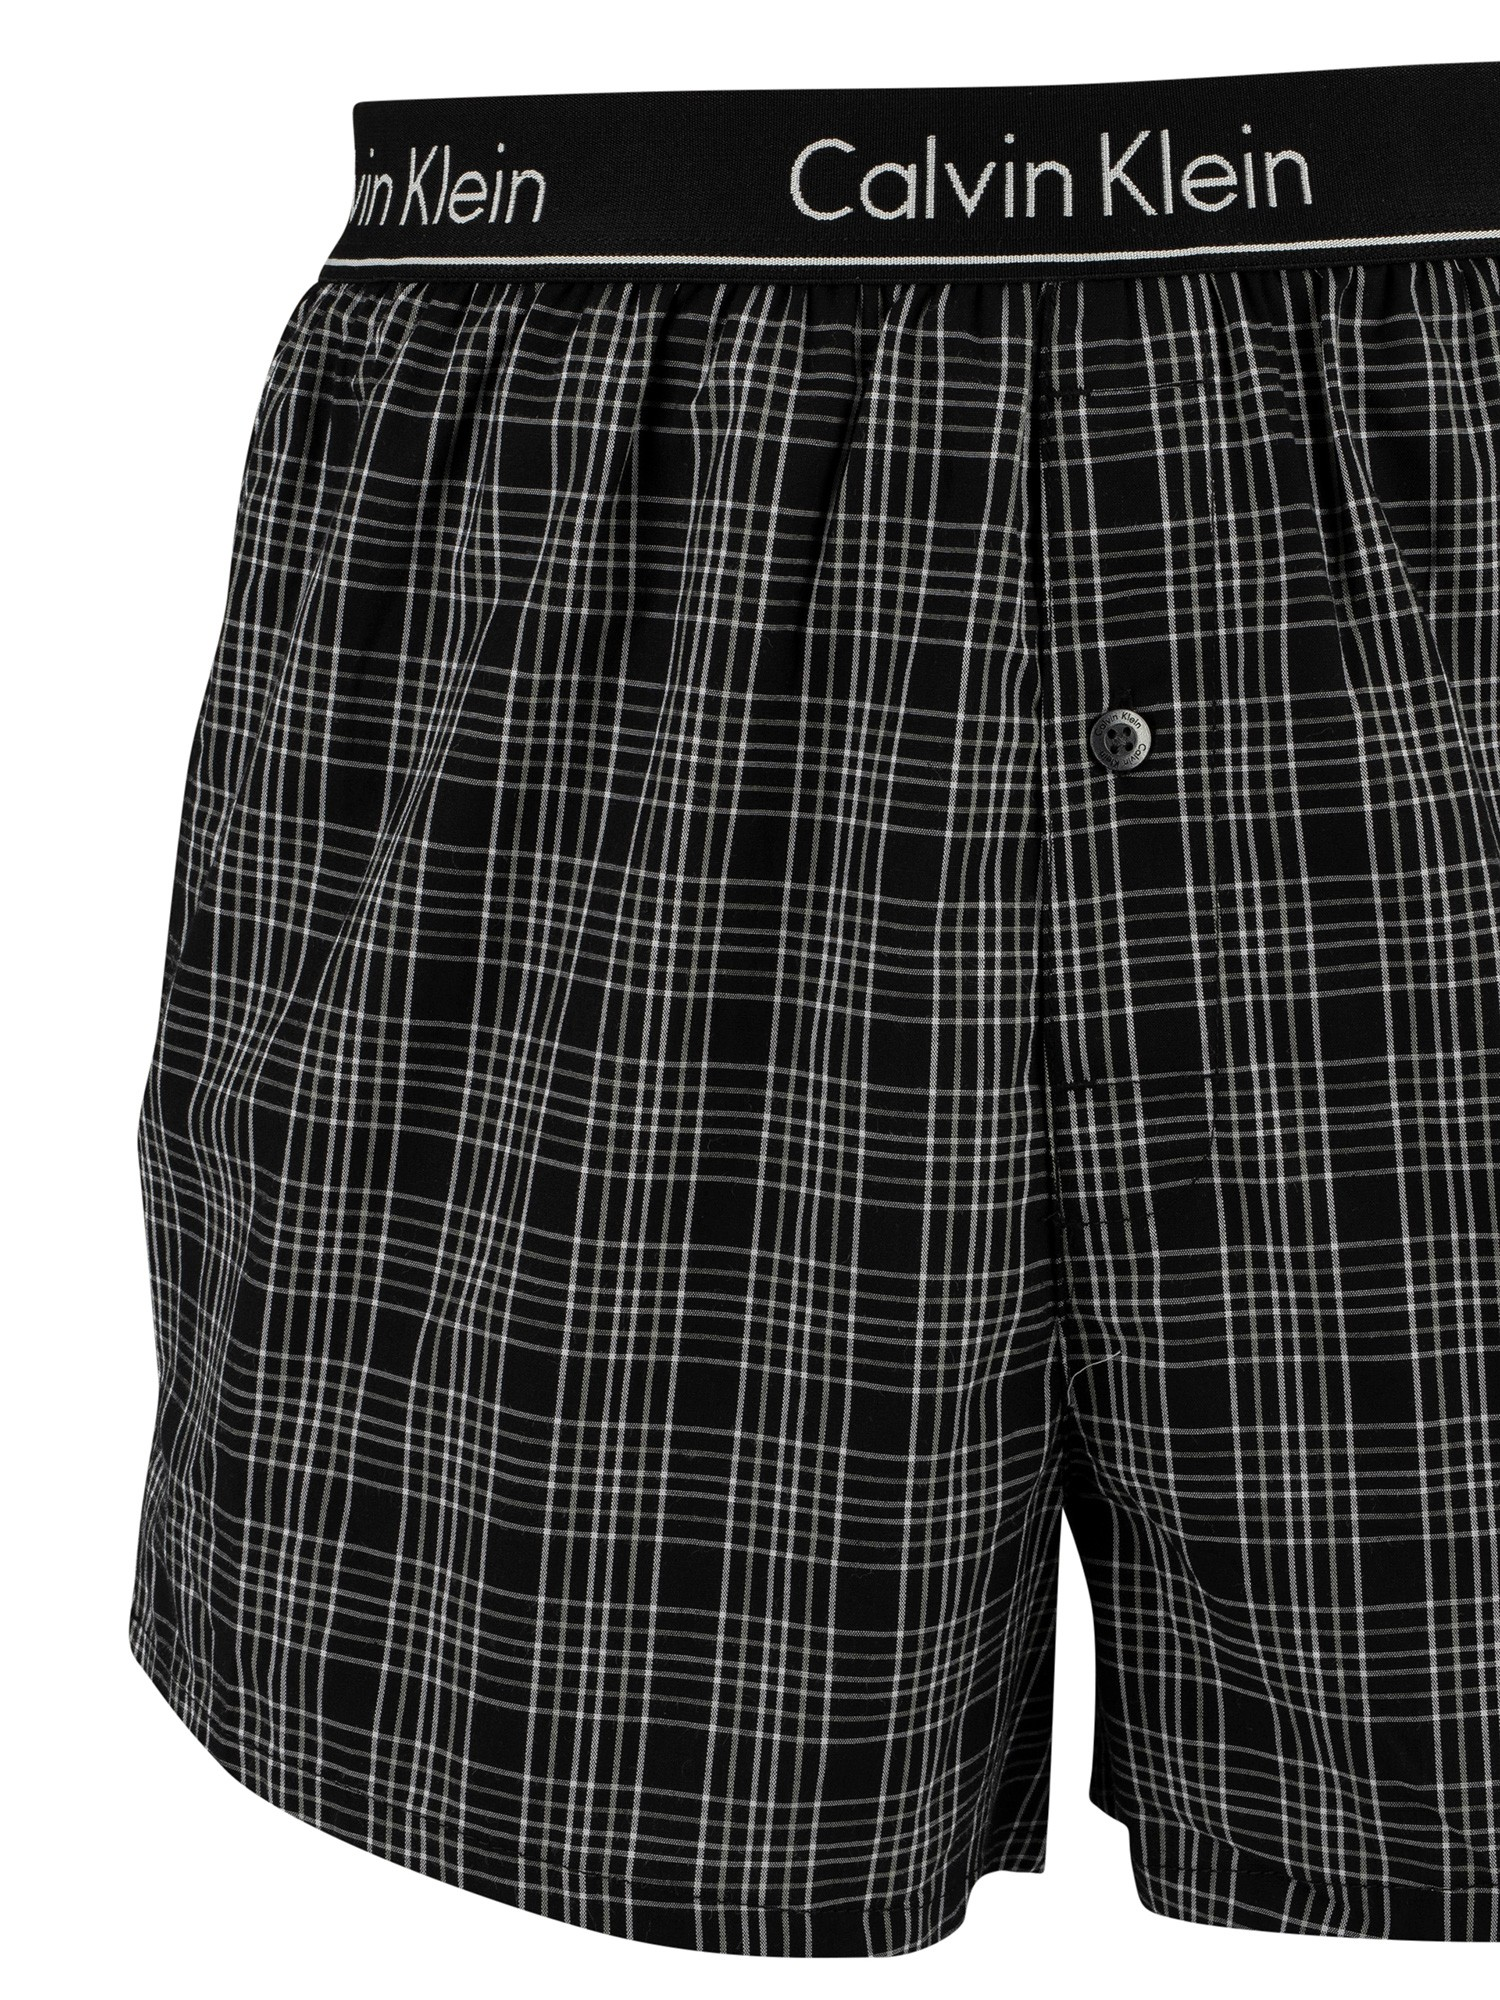 Calvin Klein 2 Pack Slim Fit Low Rise Woven Boxers - Breslin Plaid Black